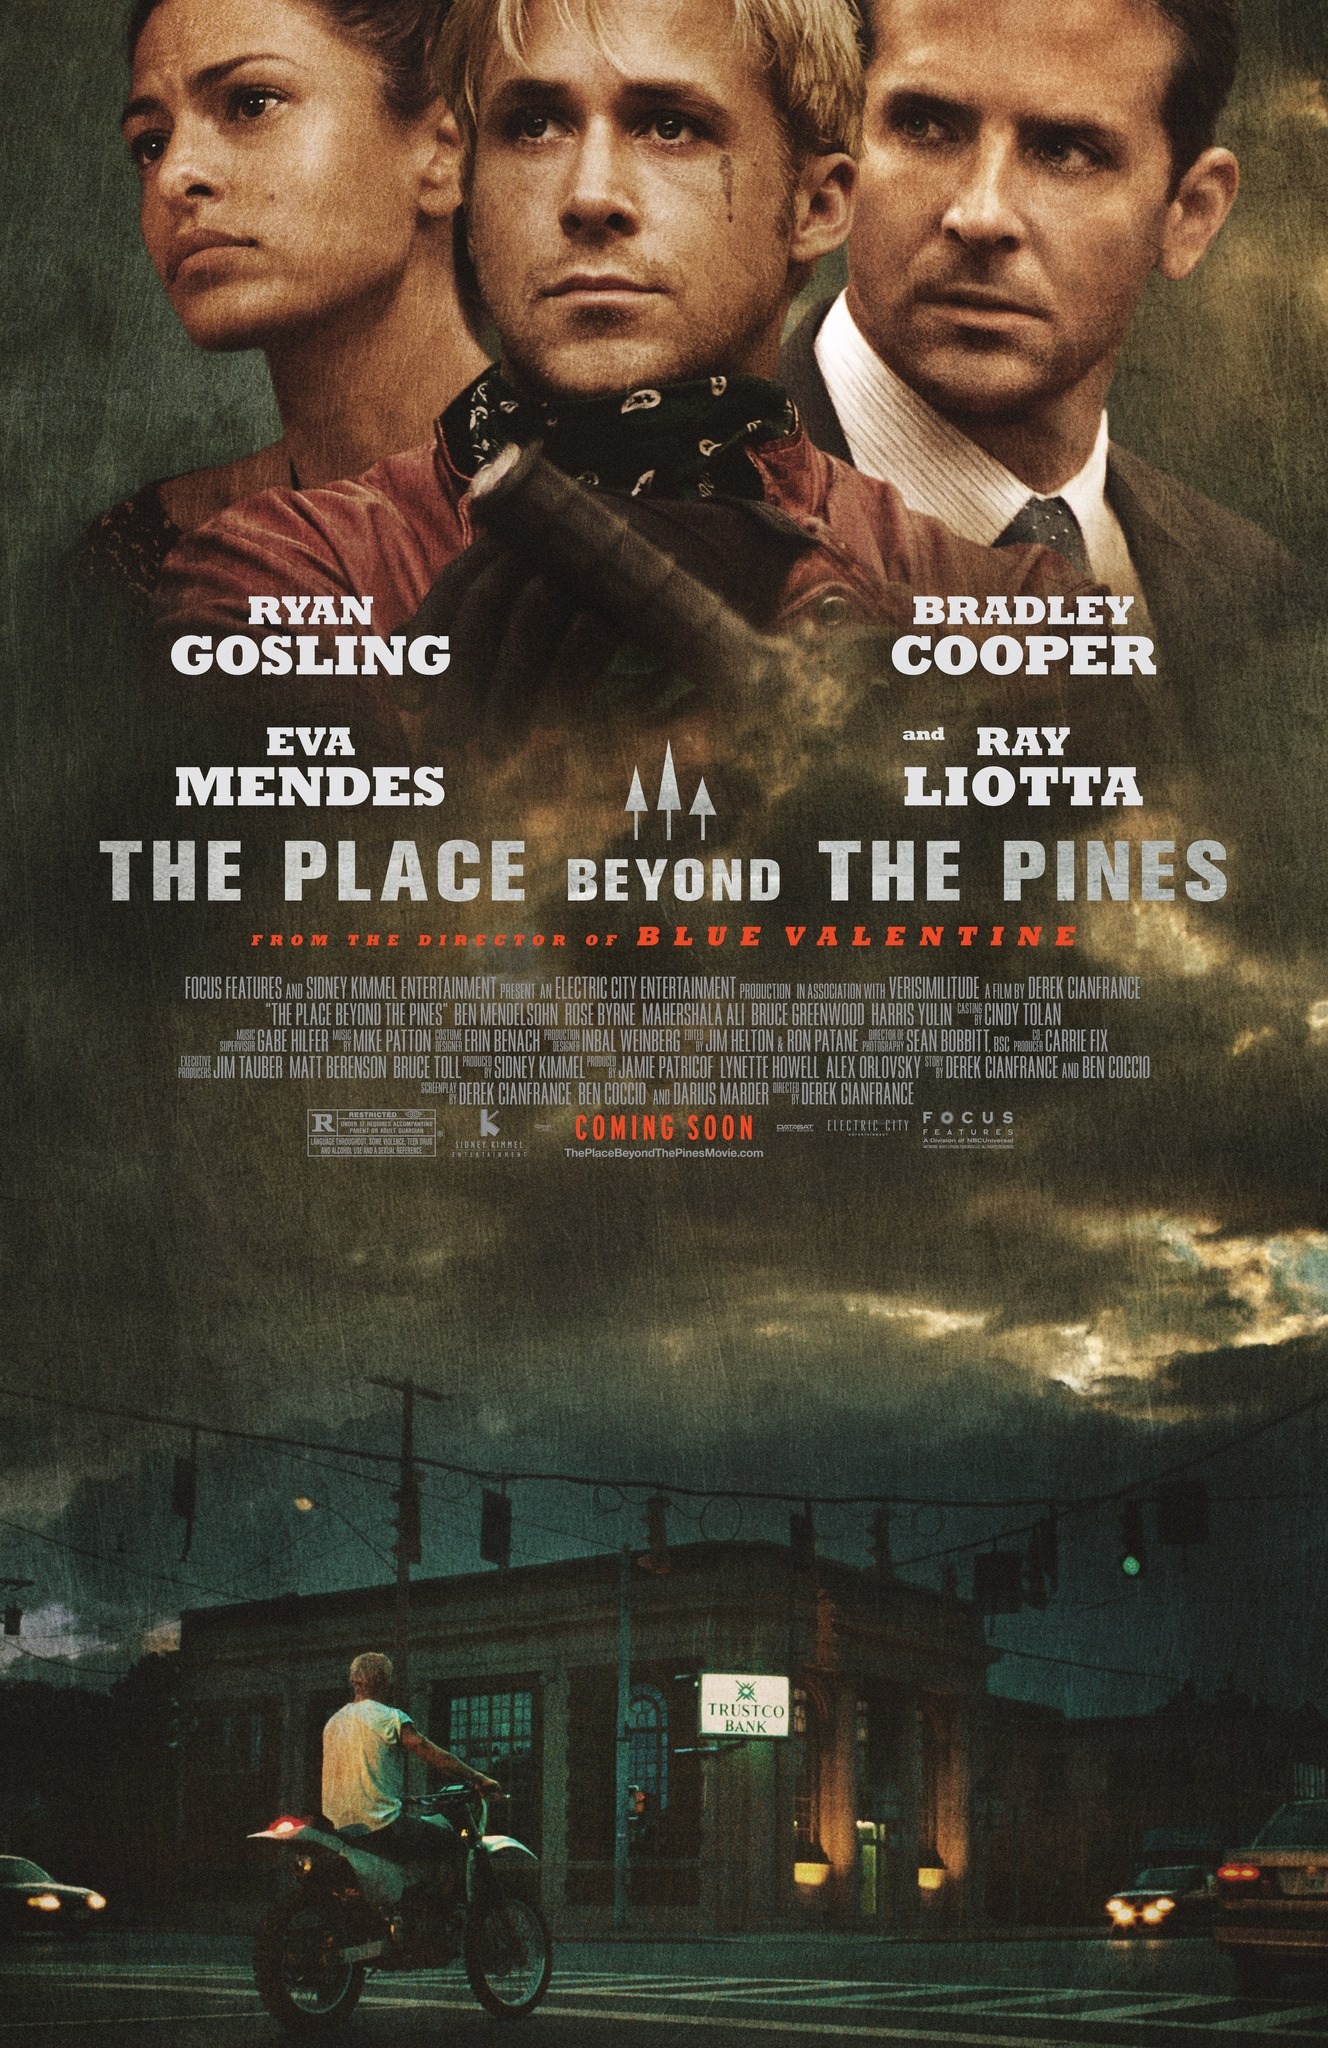 The-Place-Beyond-the-Pines-Poster.jpg?fi